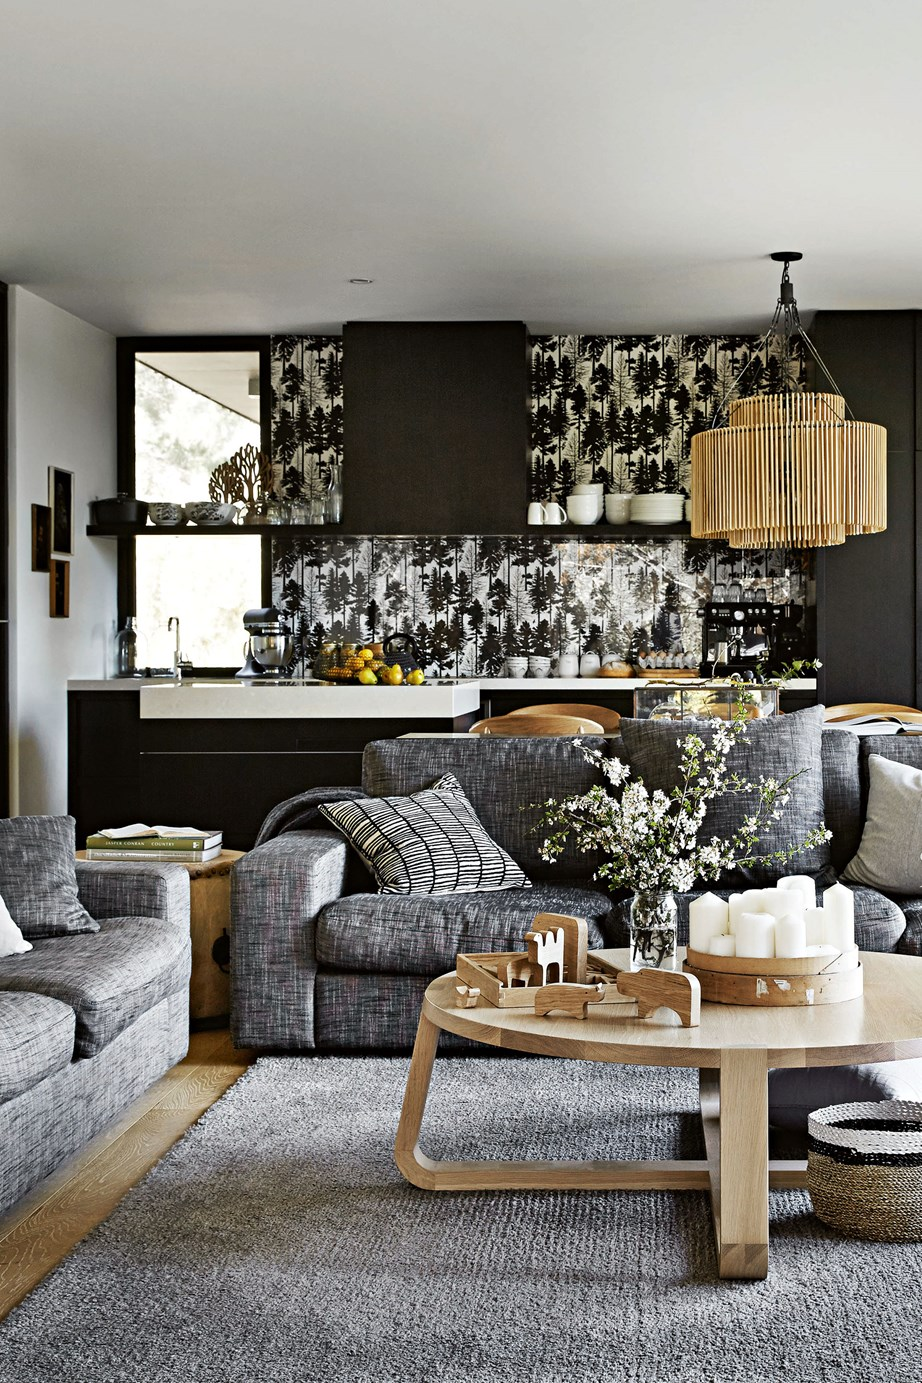 "Bespoke sofas and a 'Jade' coffee table from Zuster take pride of place in the living room of this [modern country home](https://www.homestolove.com.au/gabion-wall-country-home-13655|target=""_blank""). In the kitchen, the wallpaper spashback adds pattern and texture to the otherwise neutral room."